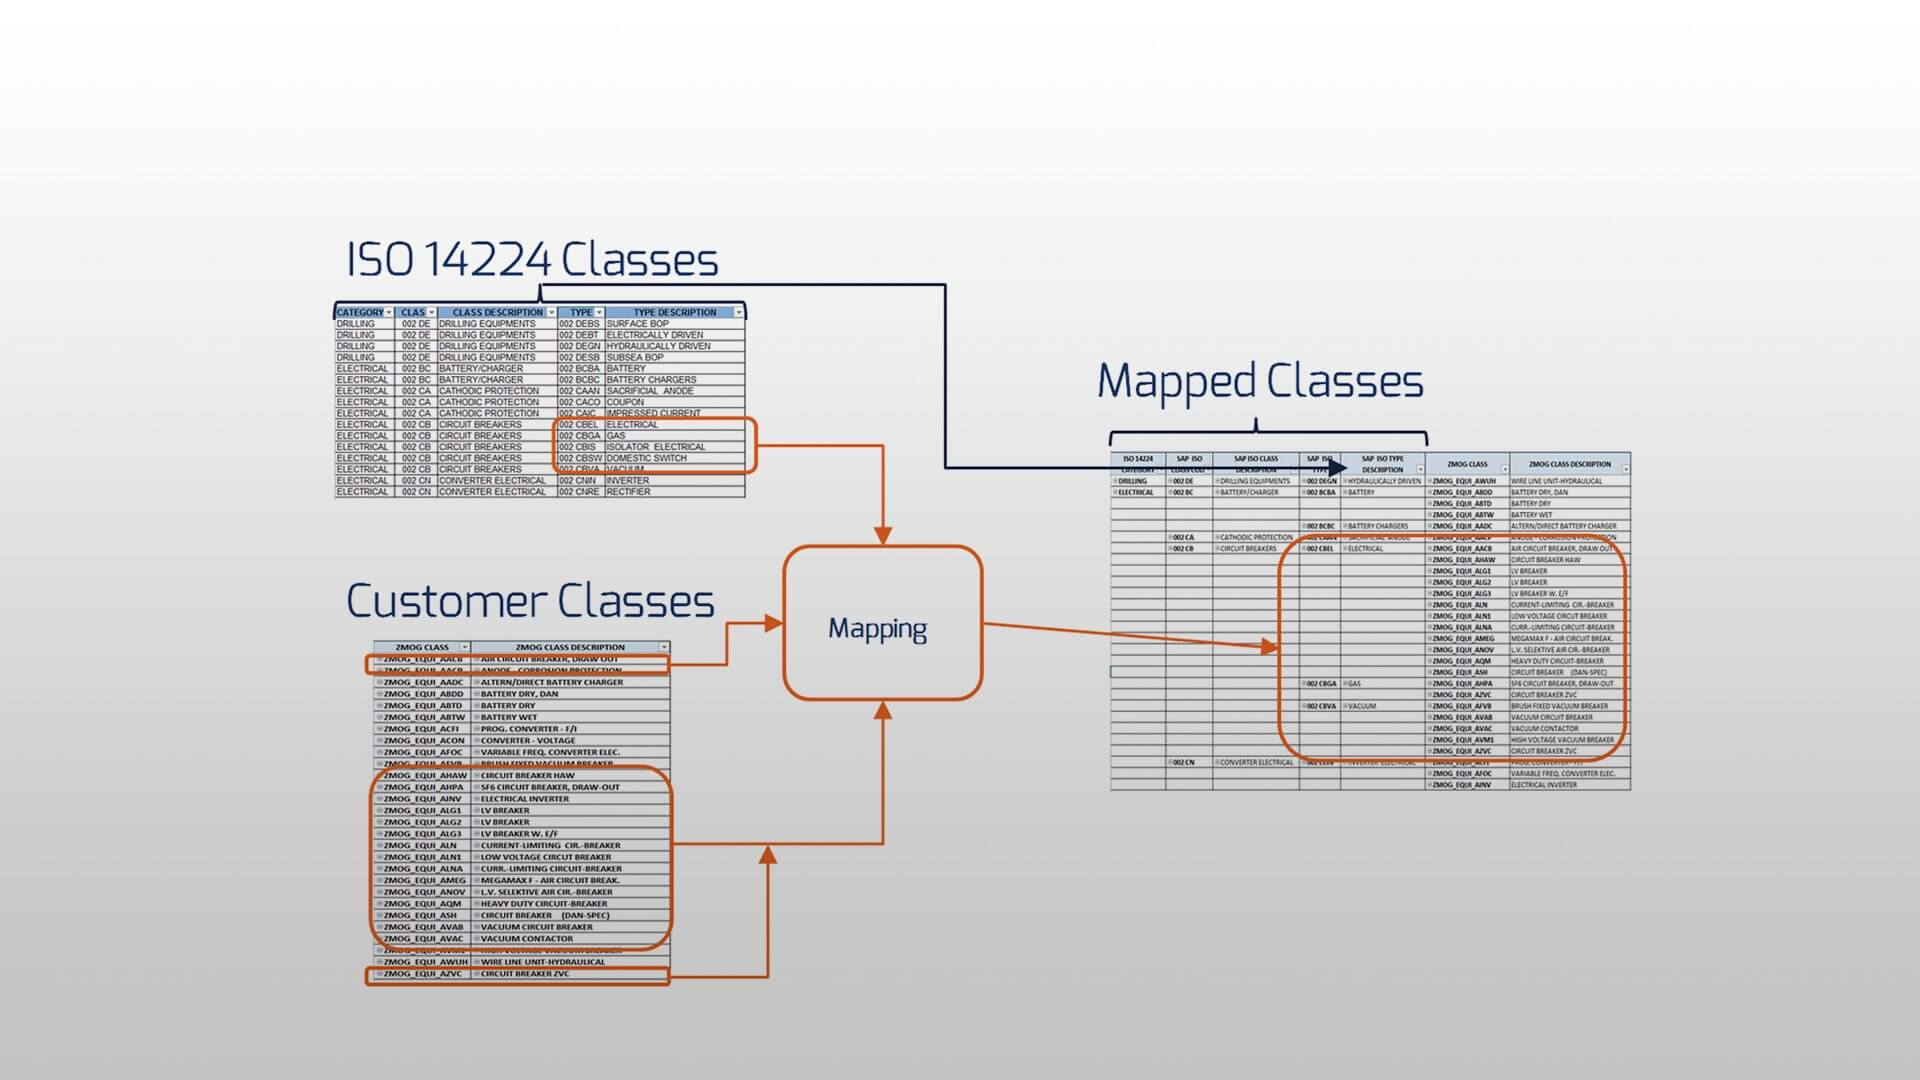 Materials classification services